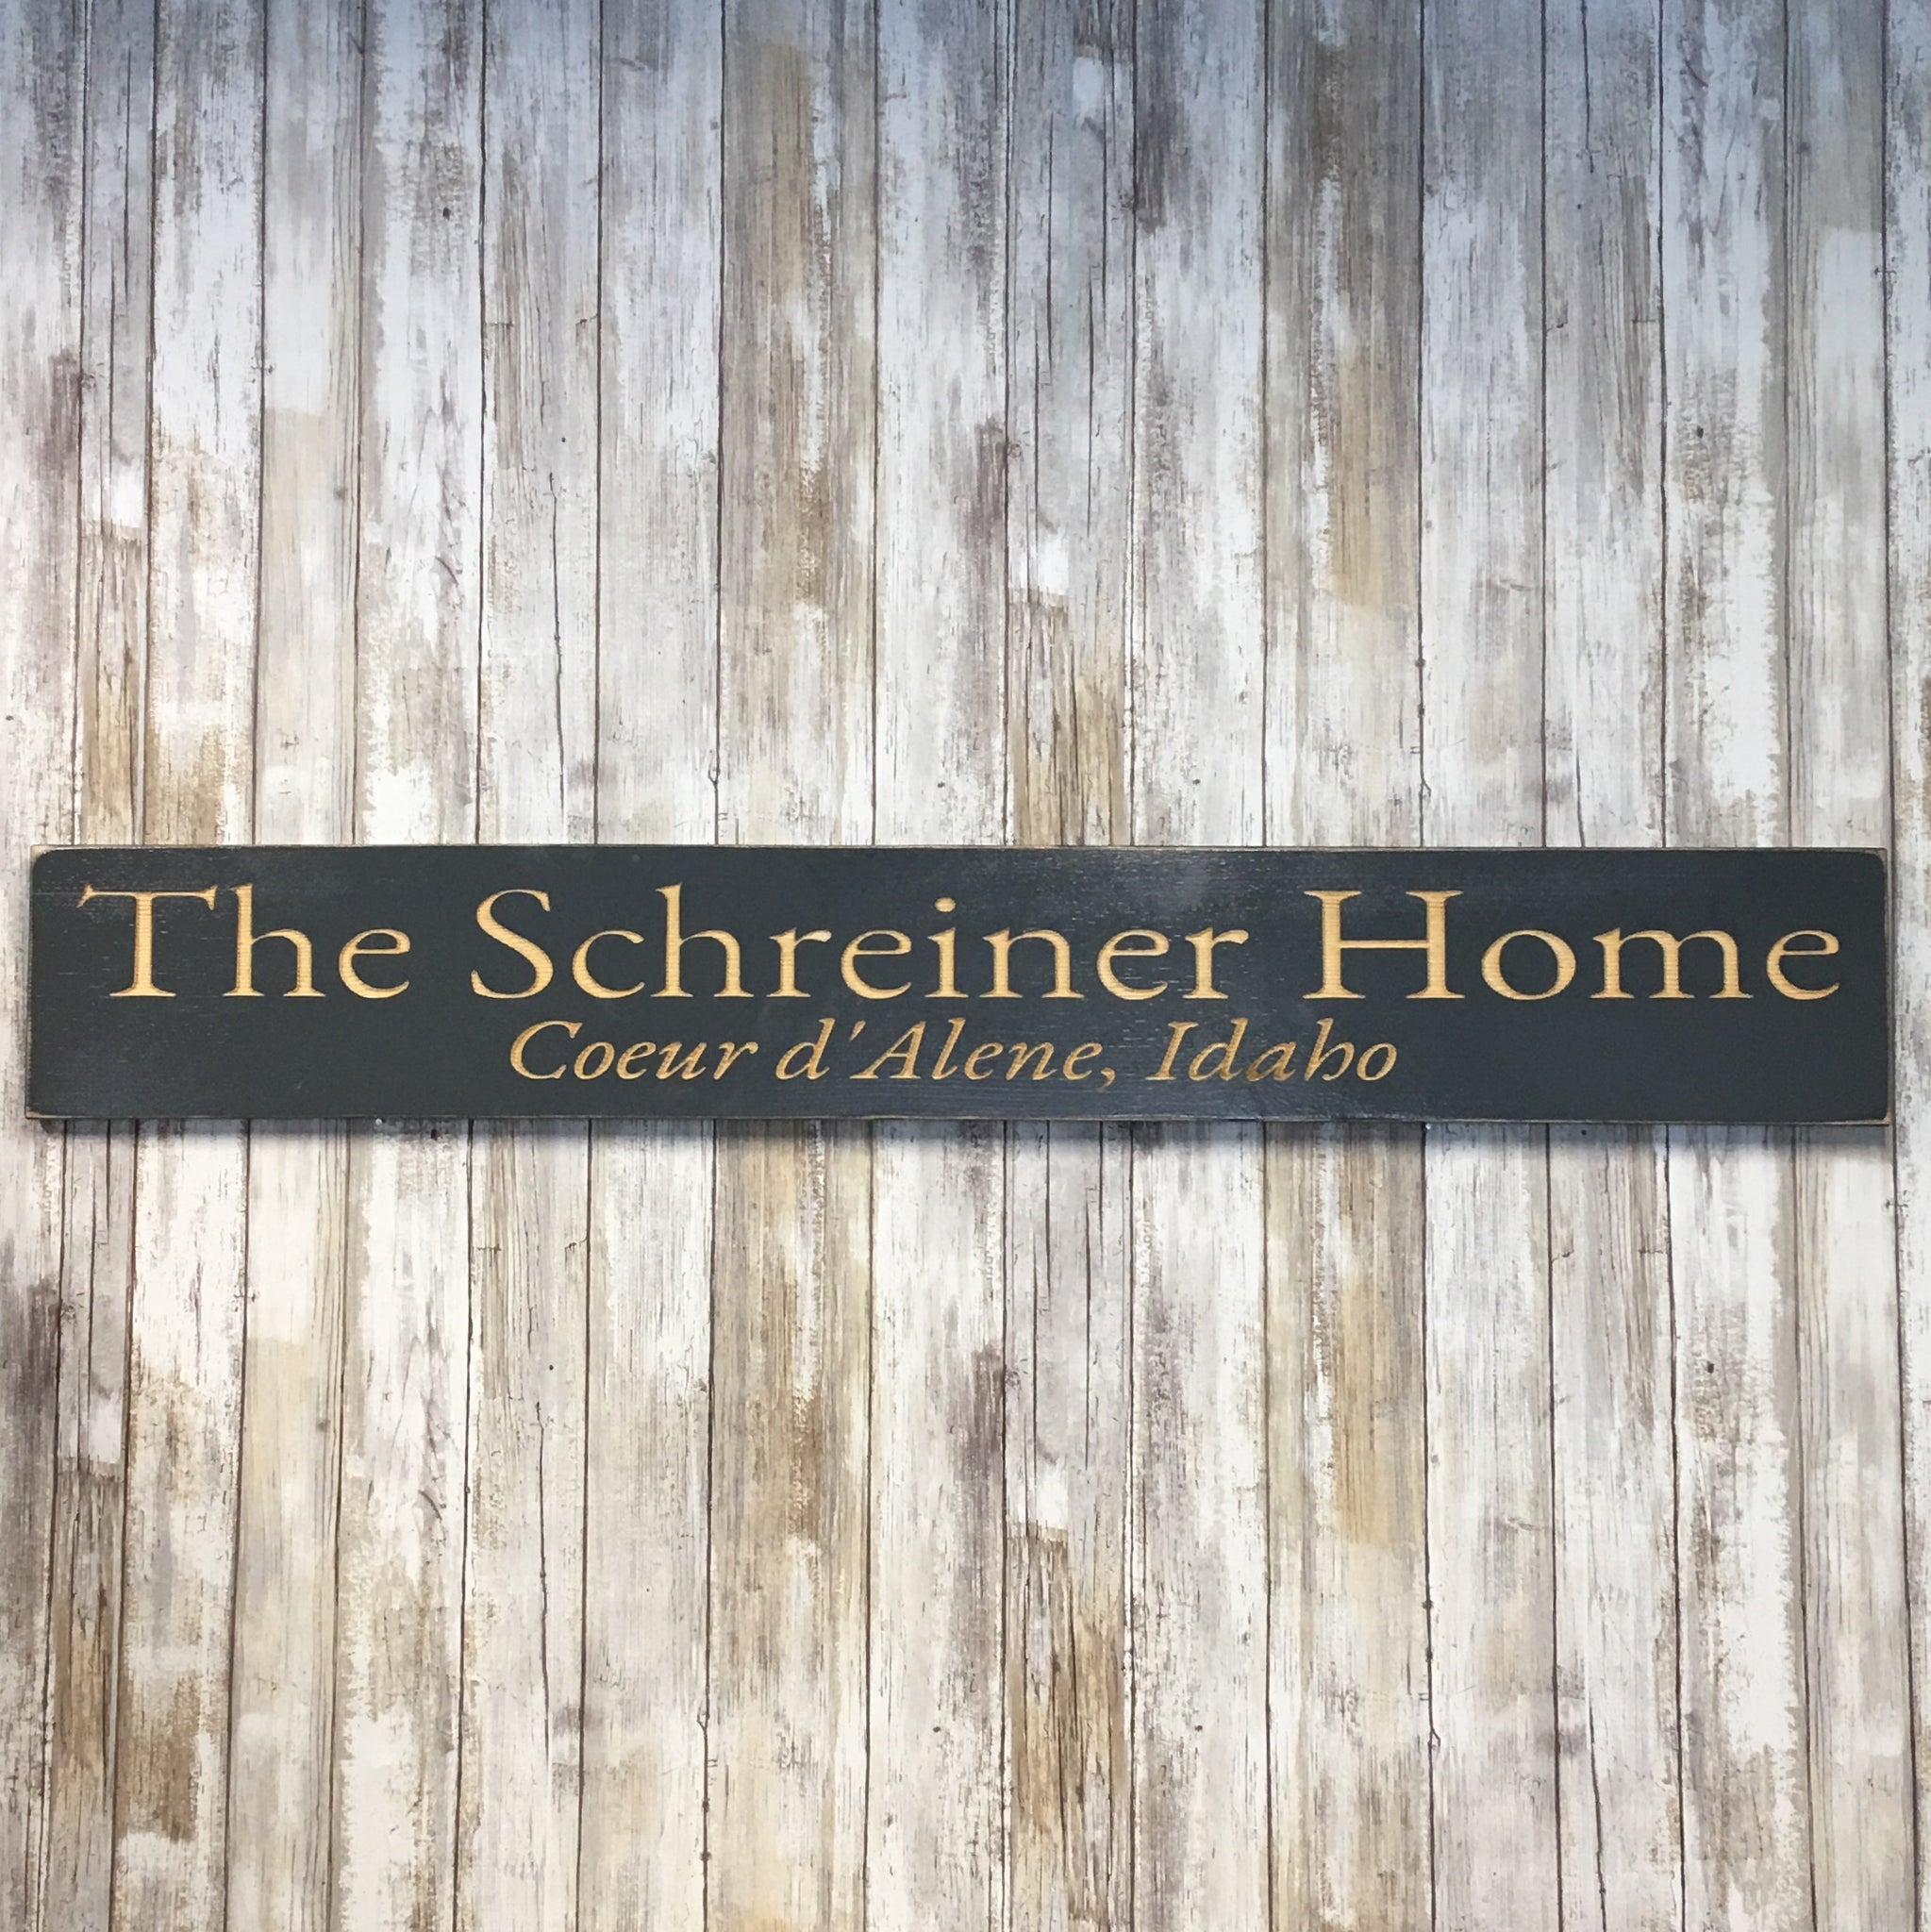 Over the Door Horizontal Family Home Name Sign - Personalize Custom - Carved Pine Wood